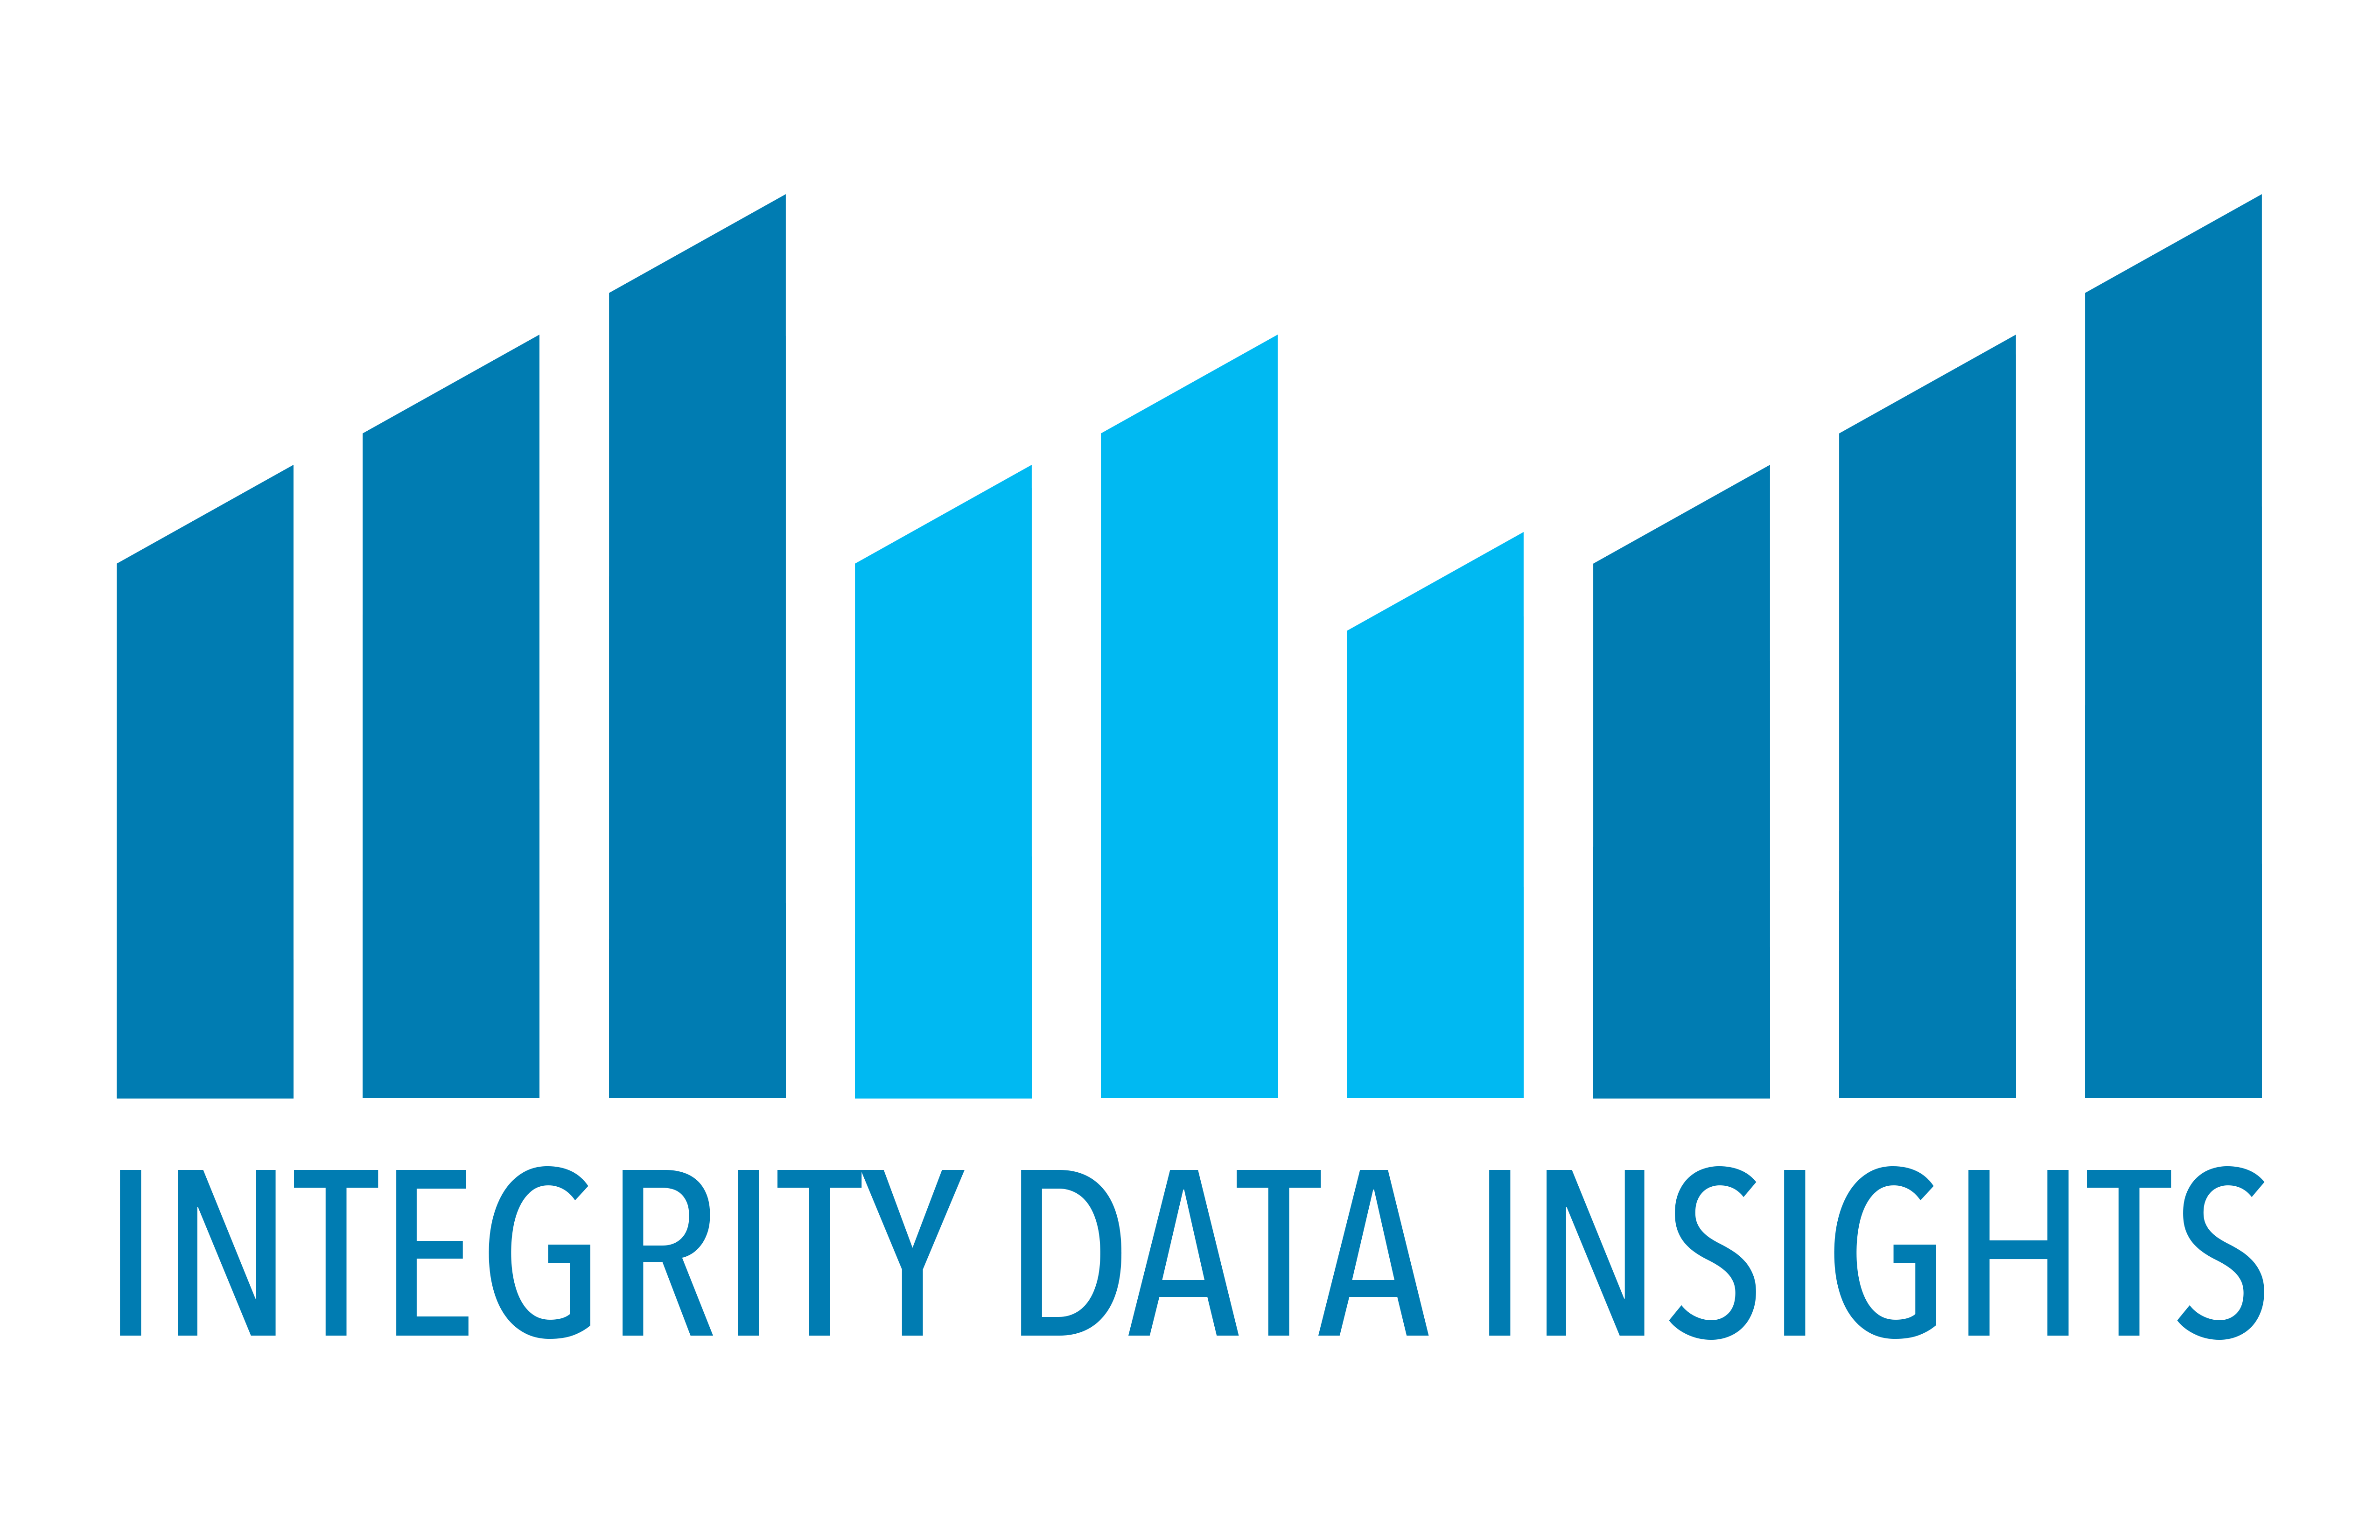 INTEGRITY DATA INSIGHTS